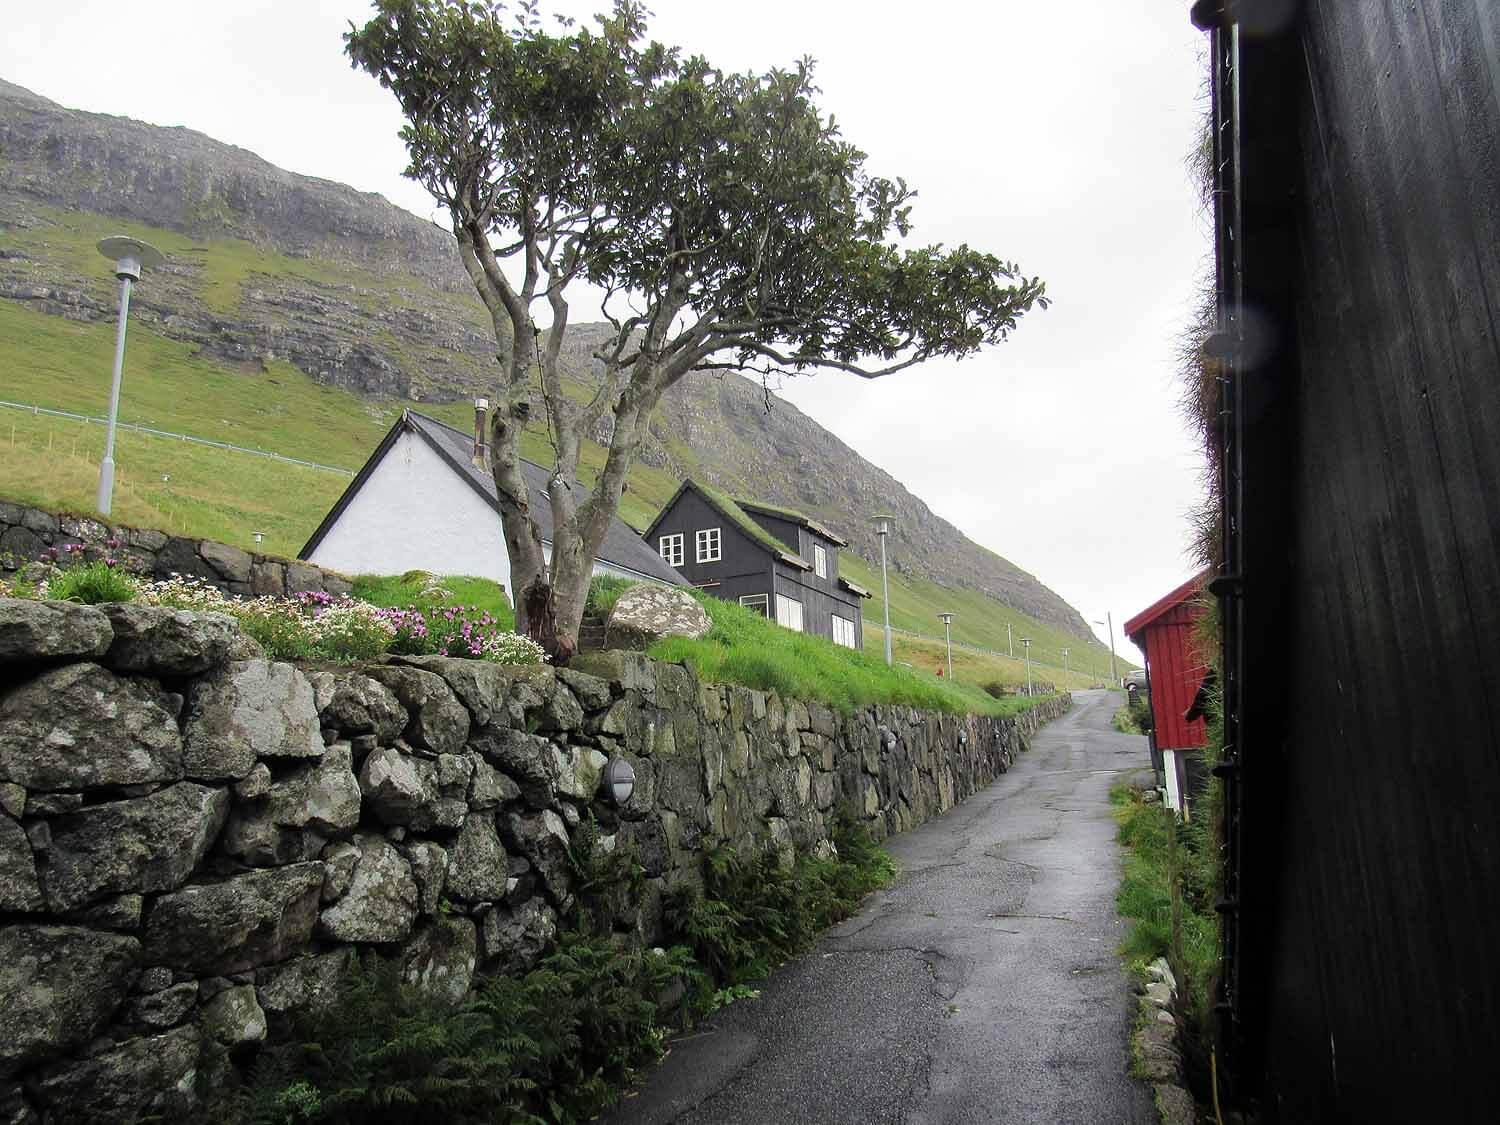 denmark-faroe-islands-vagar-boer-village-street-tree.JPG